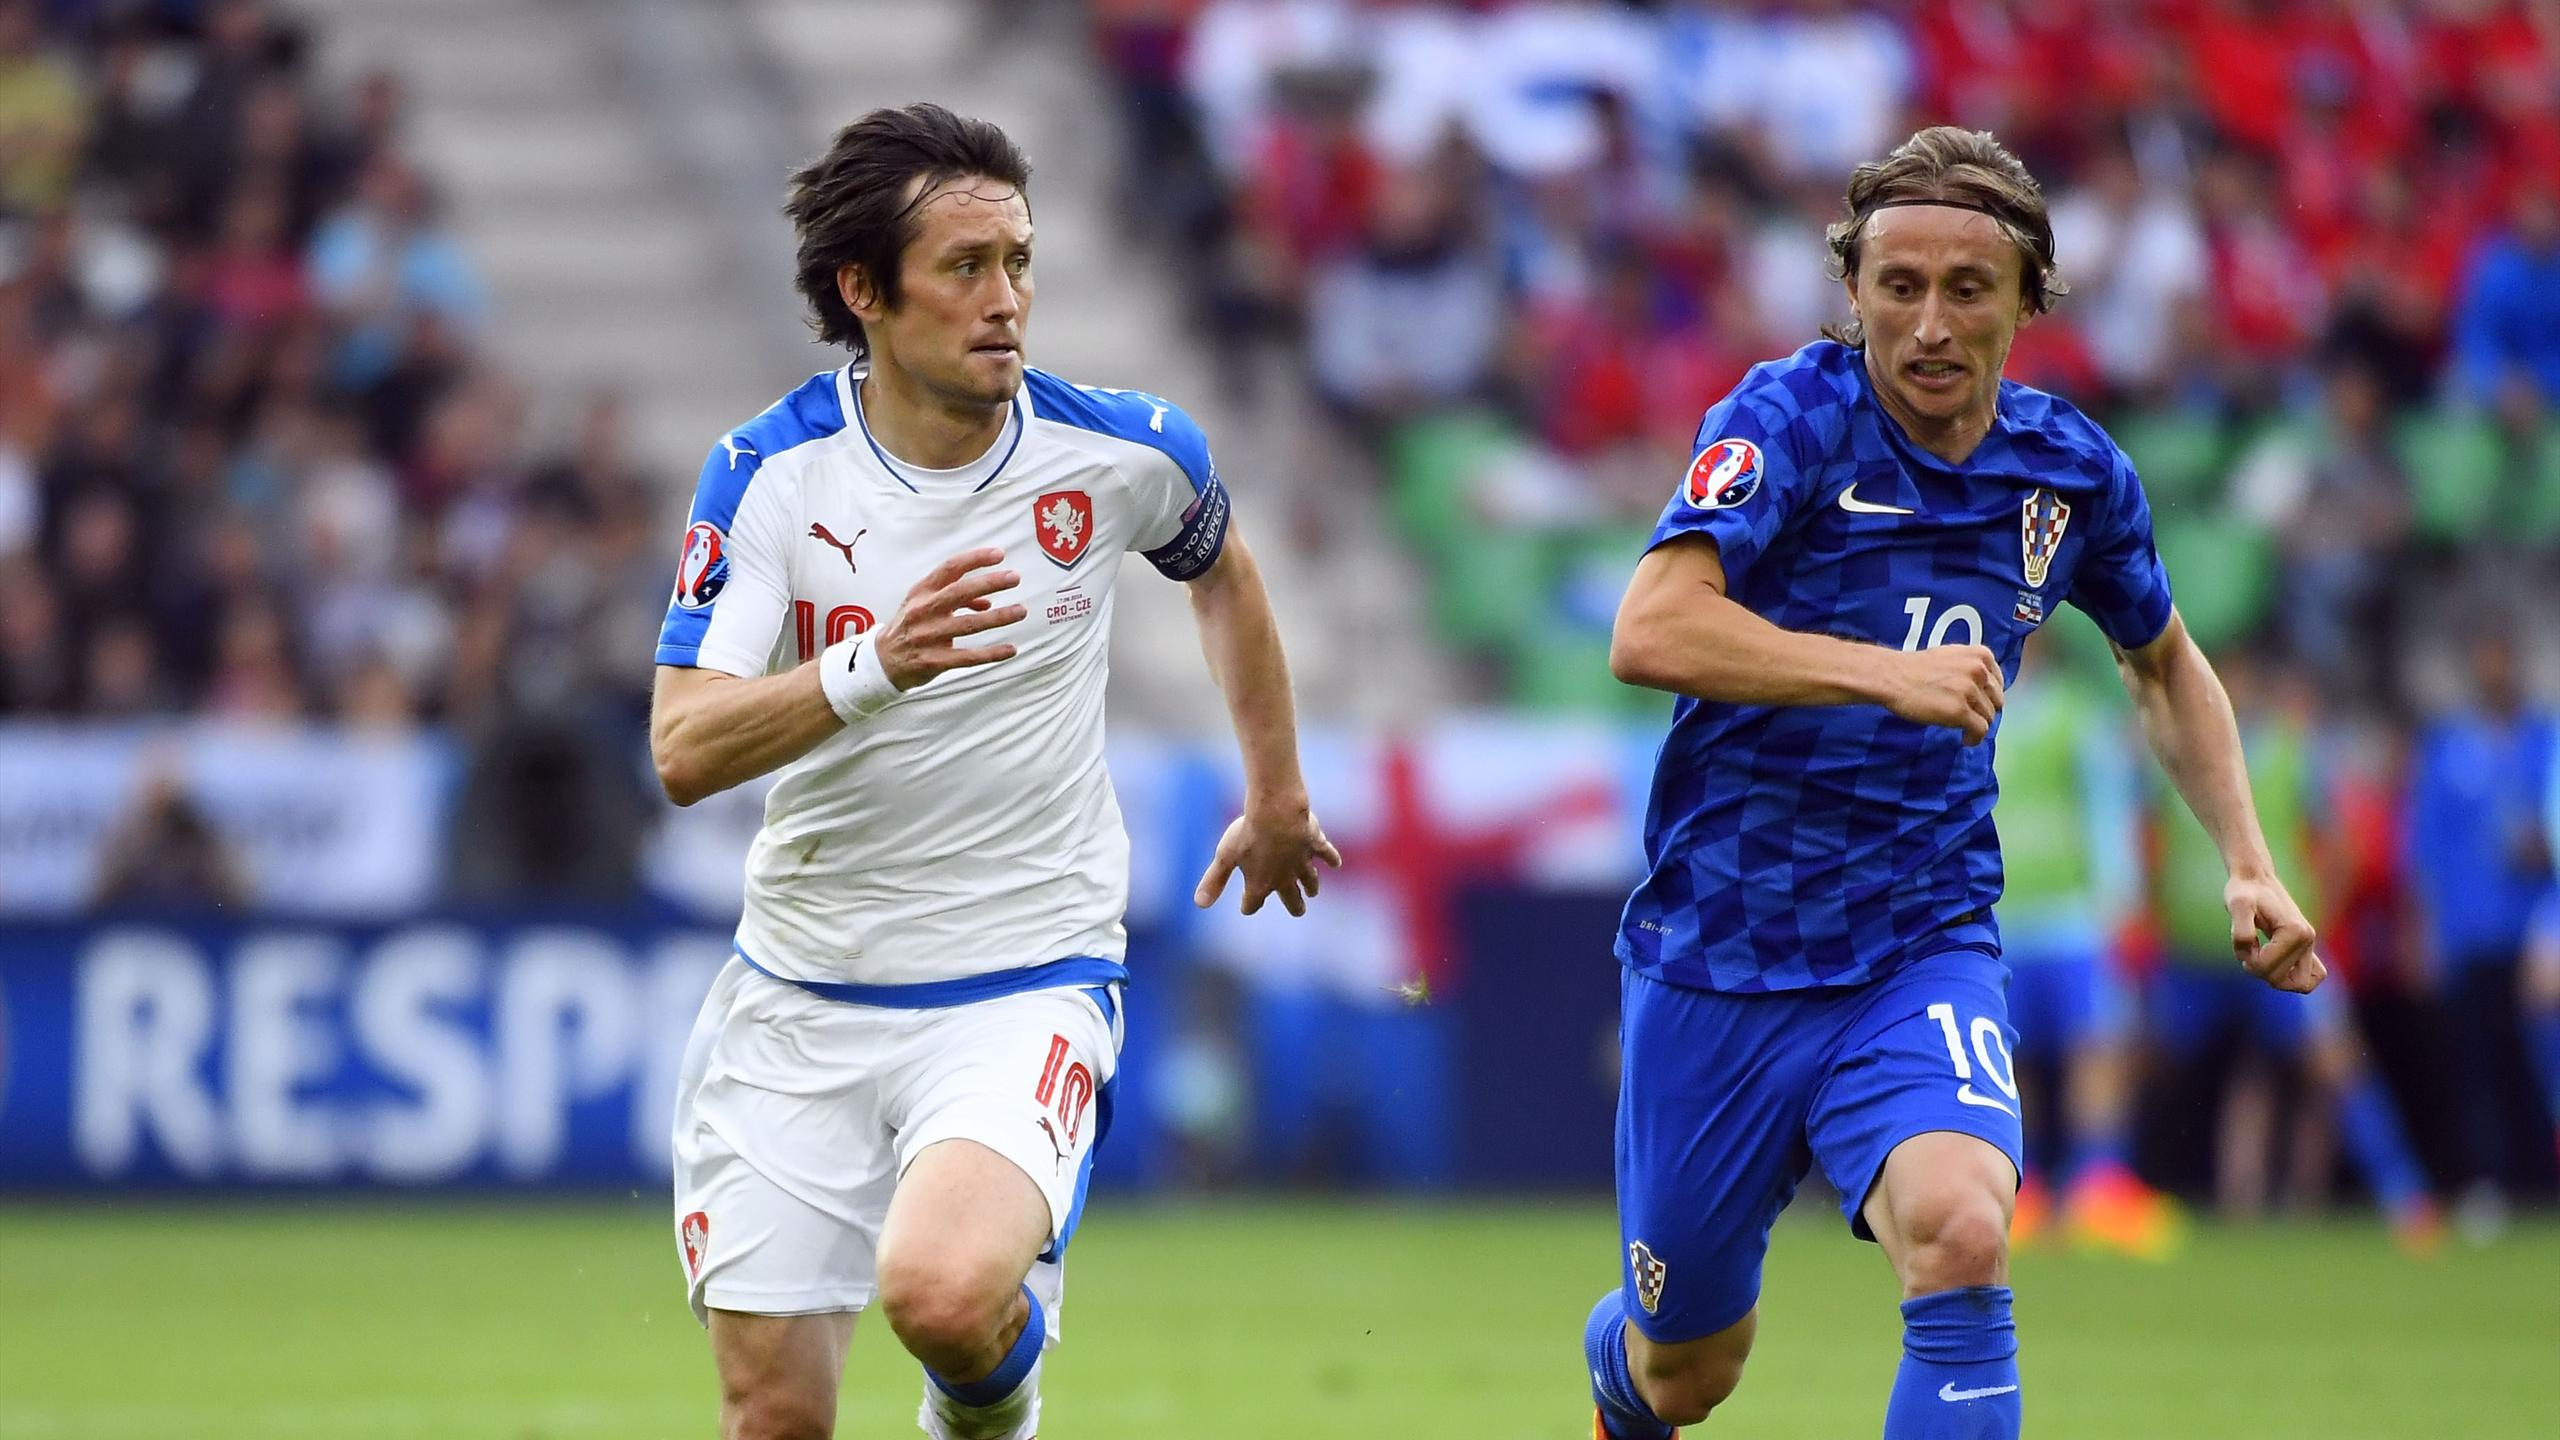 Czech Republic's midfielder Tomas Rosicky (L) vies for the ball against Croatia's midfielder Luka Modric